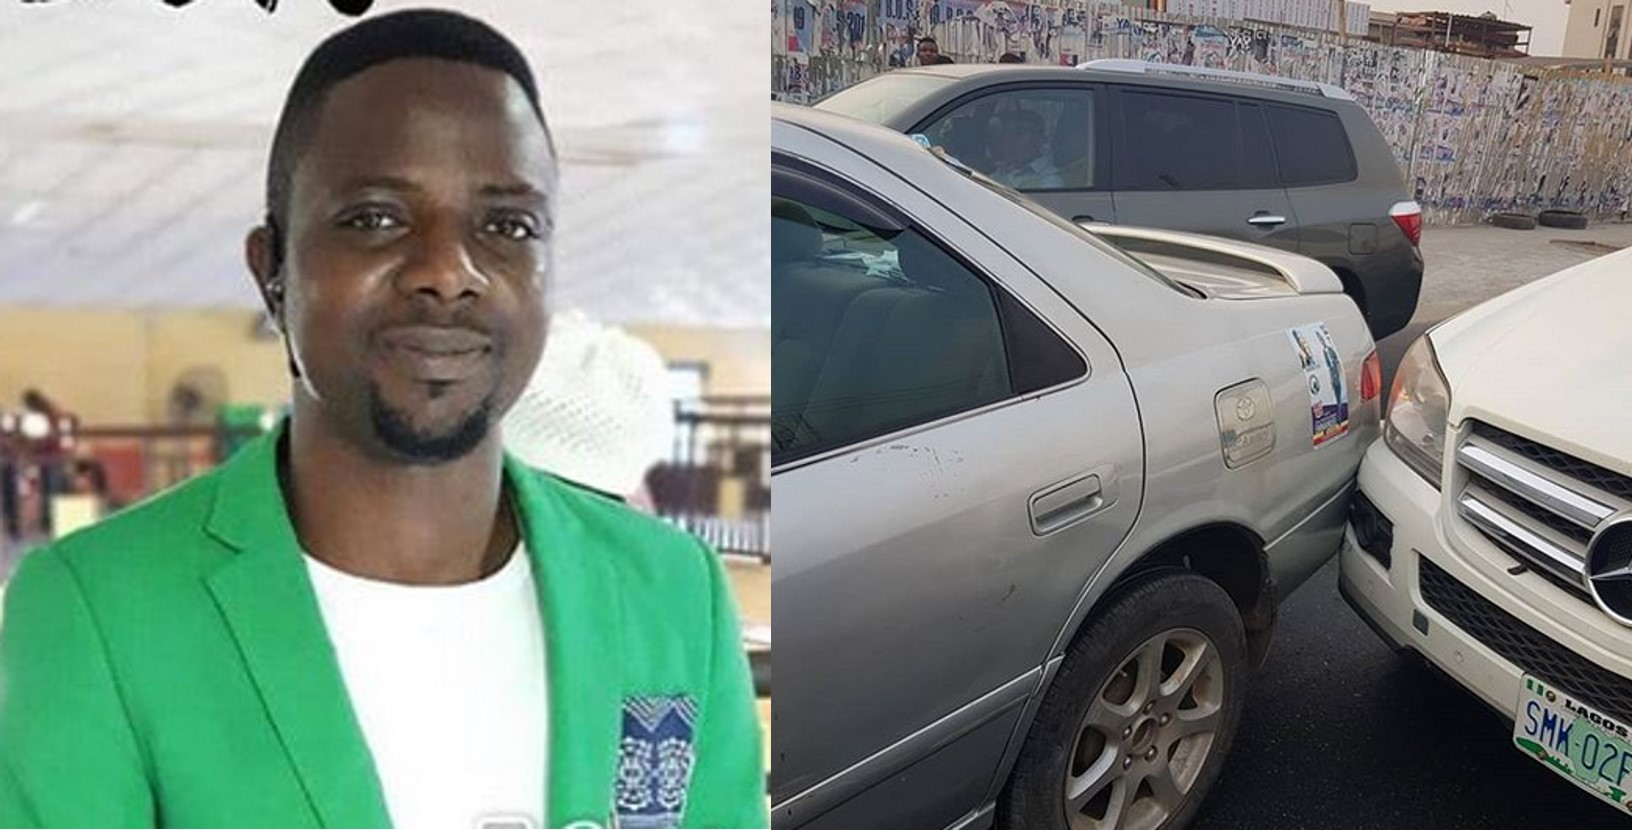 Nigerian man narrates how he was oppressed by a Benz owner (Photos)